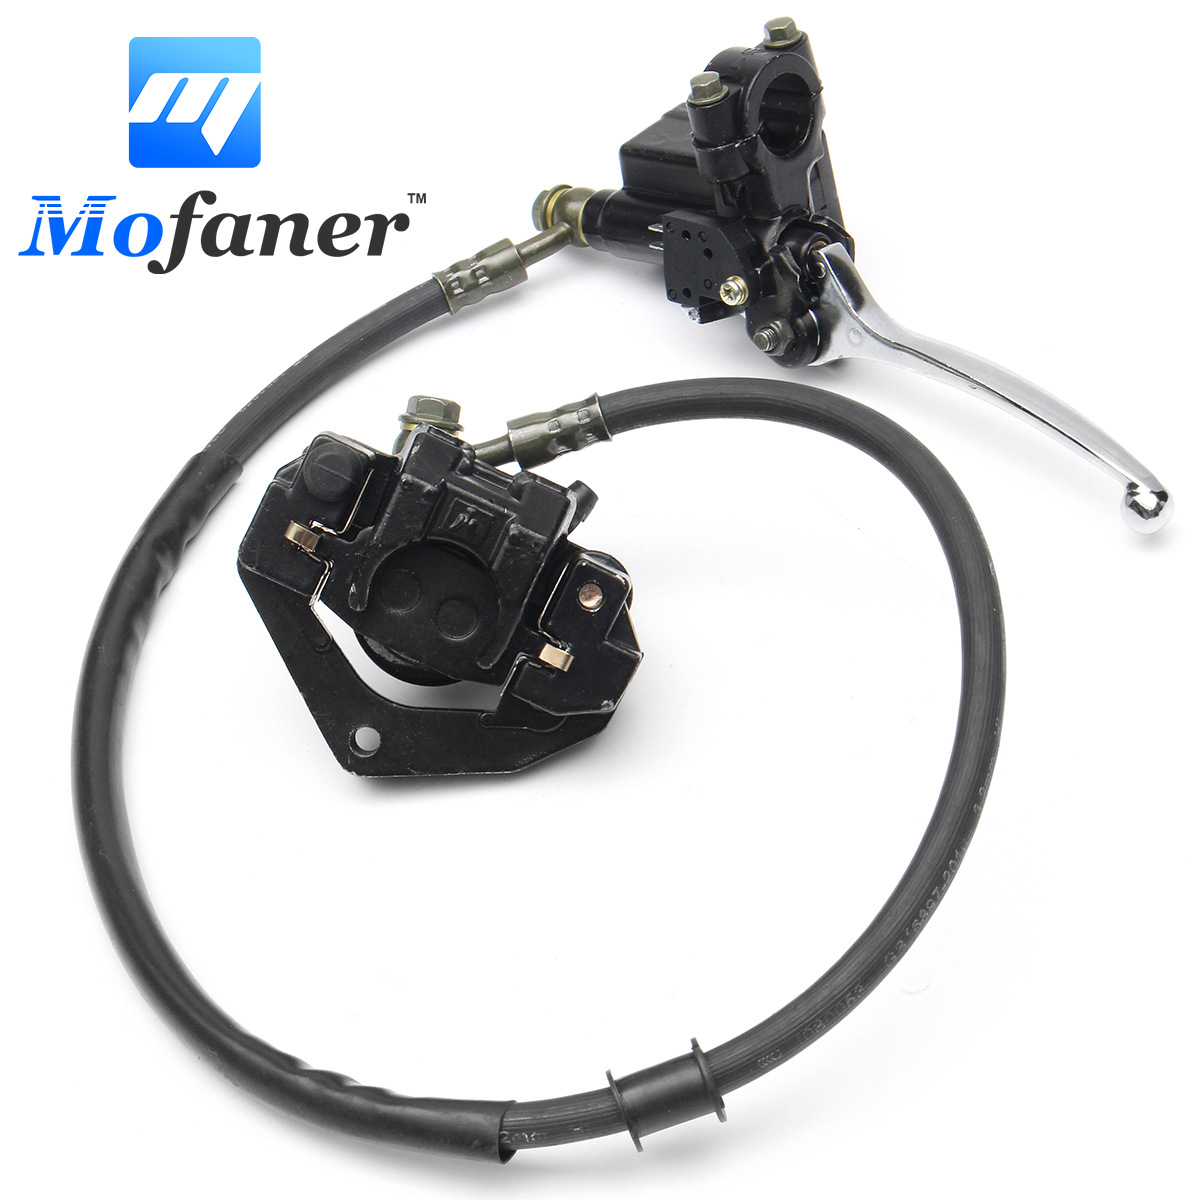 Front Hydraulic Caliper Brake Assembly For 50cc 70cc 110cc 125cc Dirt Pit Bikes<br>